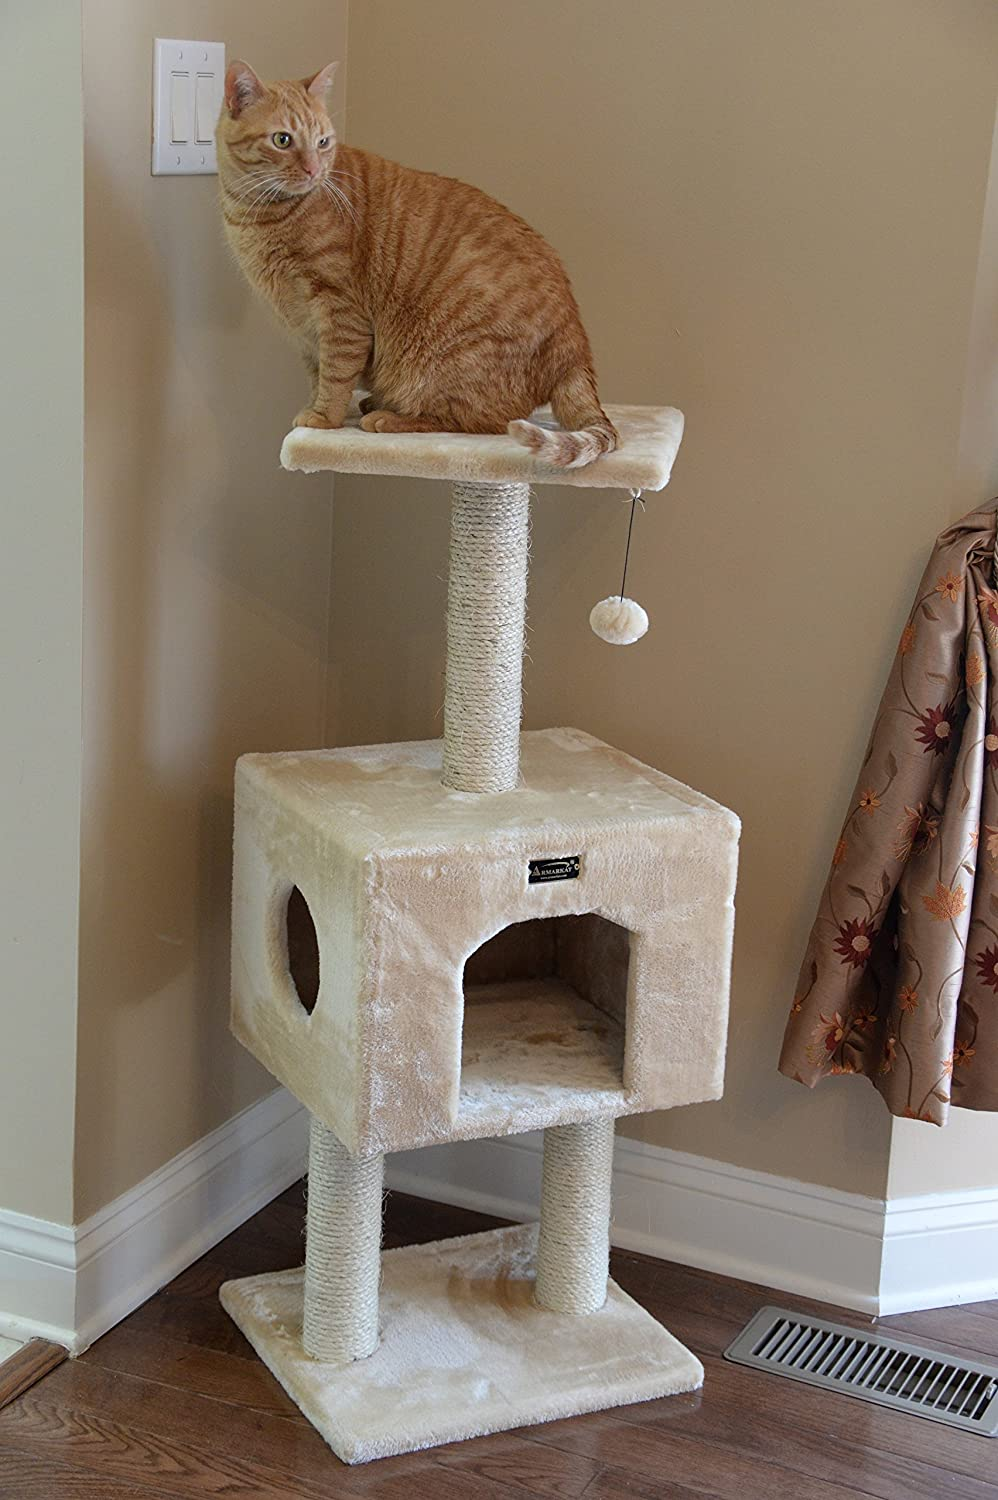 Amazon.com : Armarkat Cat Tree Model A4201, Beige : Cat Tower : Pet Supplies